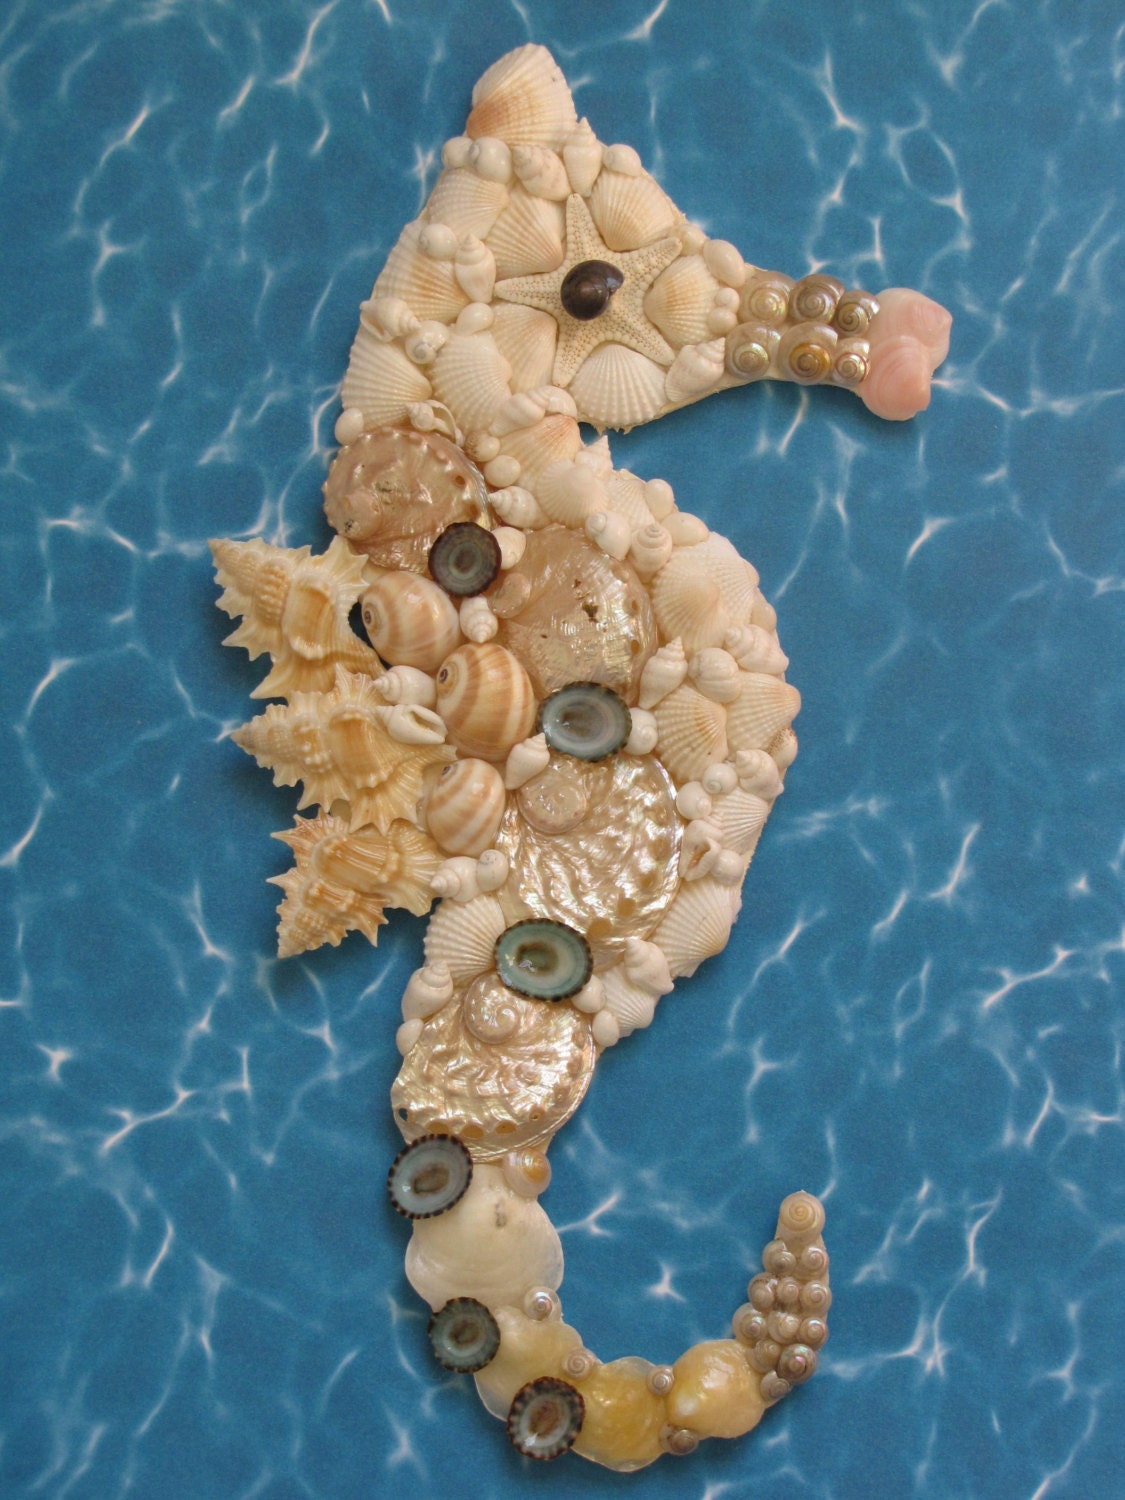 seahorse wall decor seahorse shell art beach decor. Black Bedroom Furniture Sets. Home Design Ideas